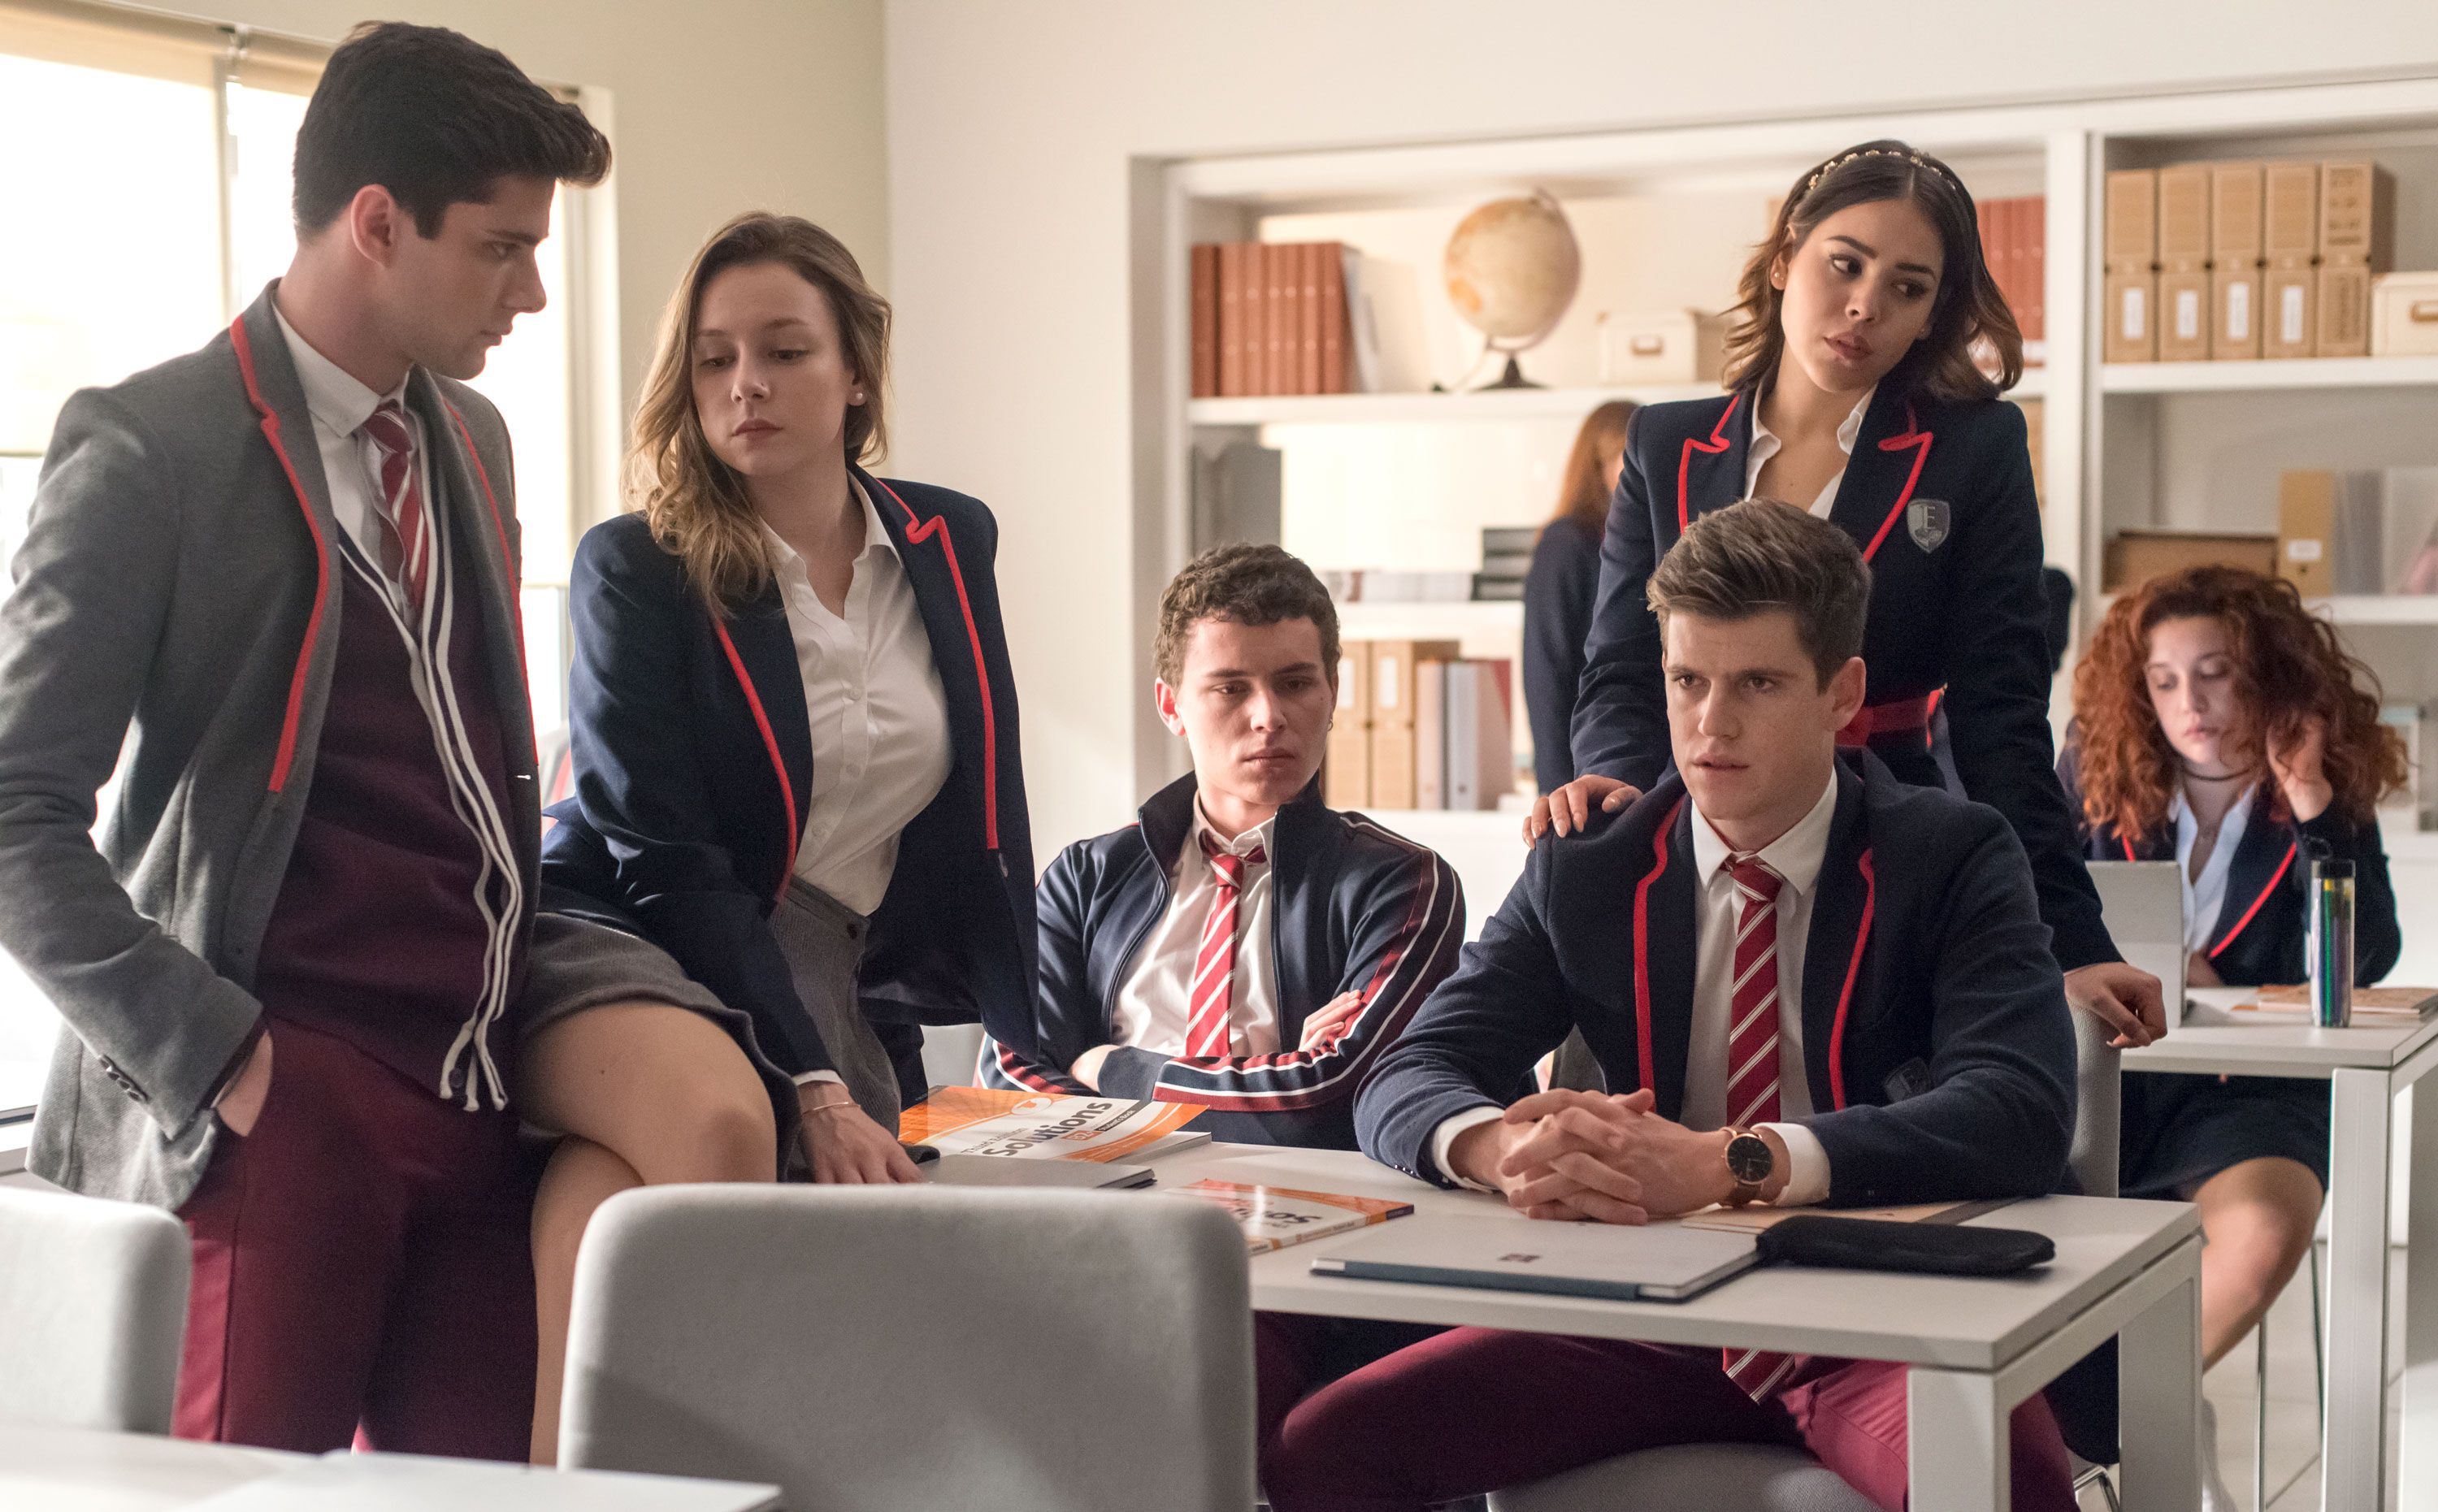 Questions Élite needs to answer when it returns for season 3